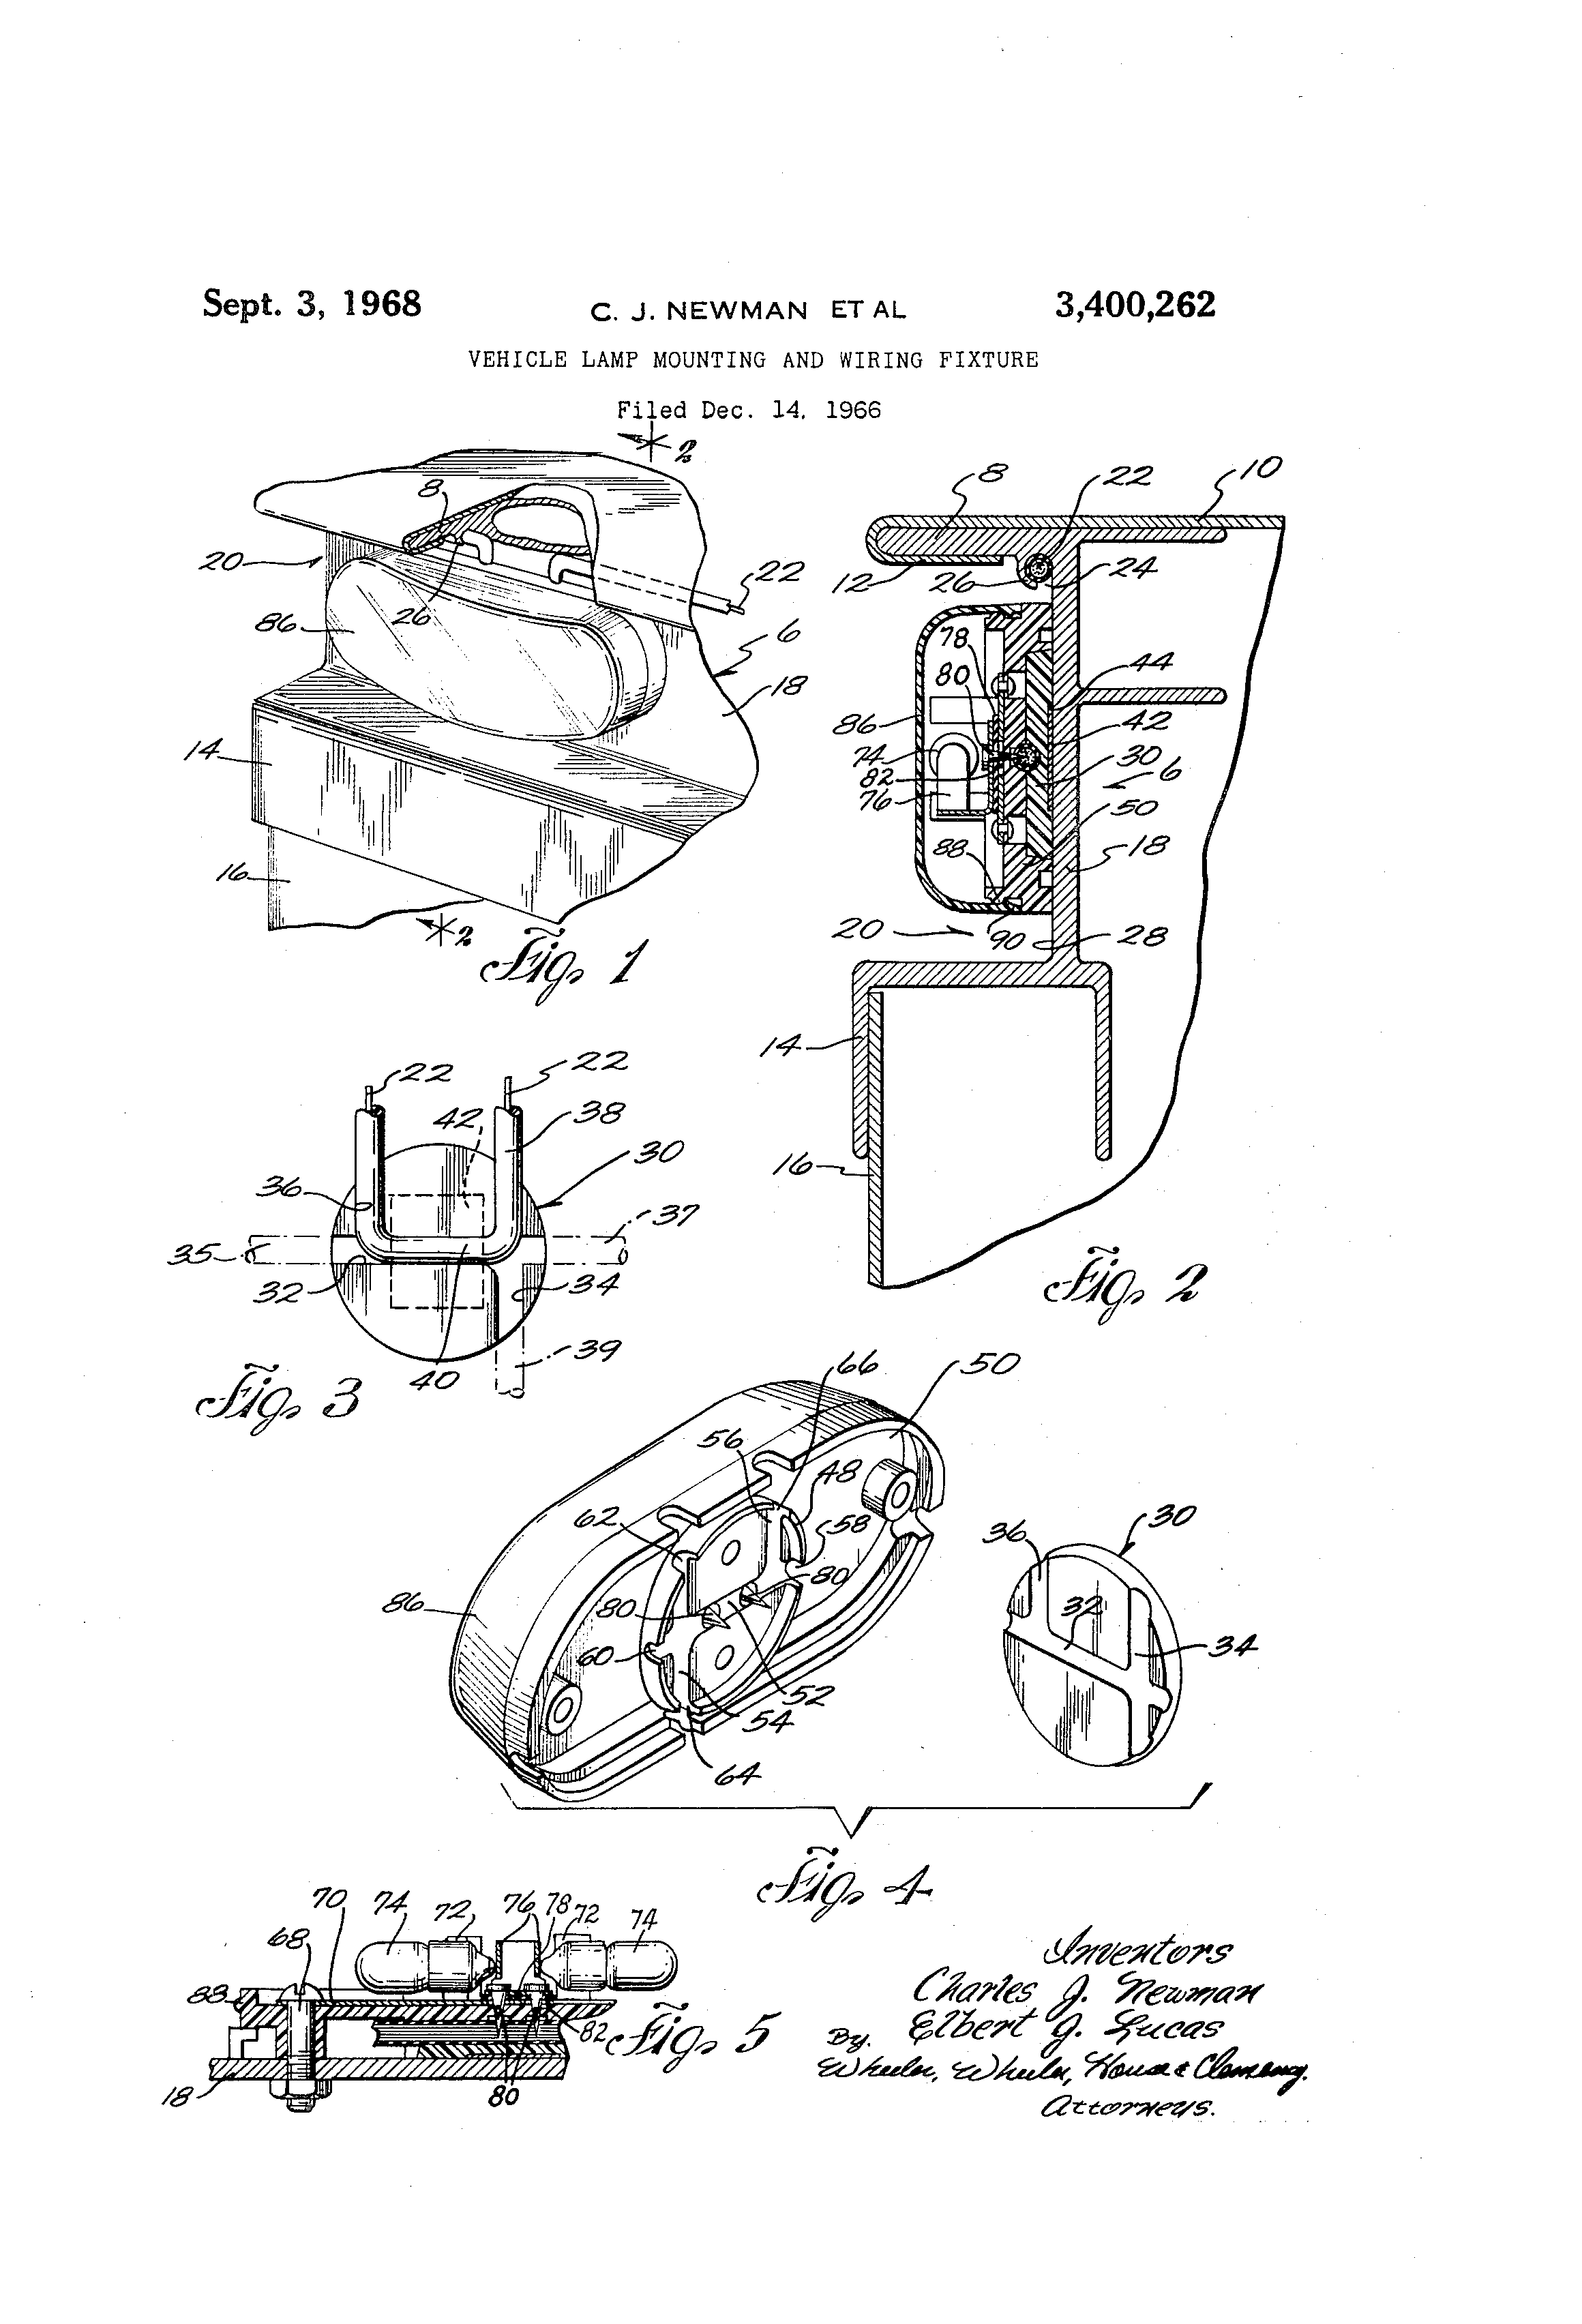 patent us3400262 - vehicle lamp mounting and wiring fixture